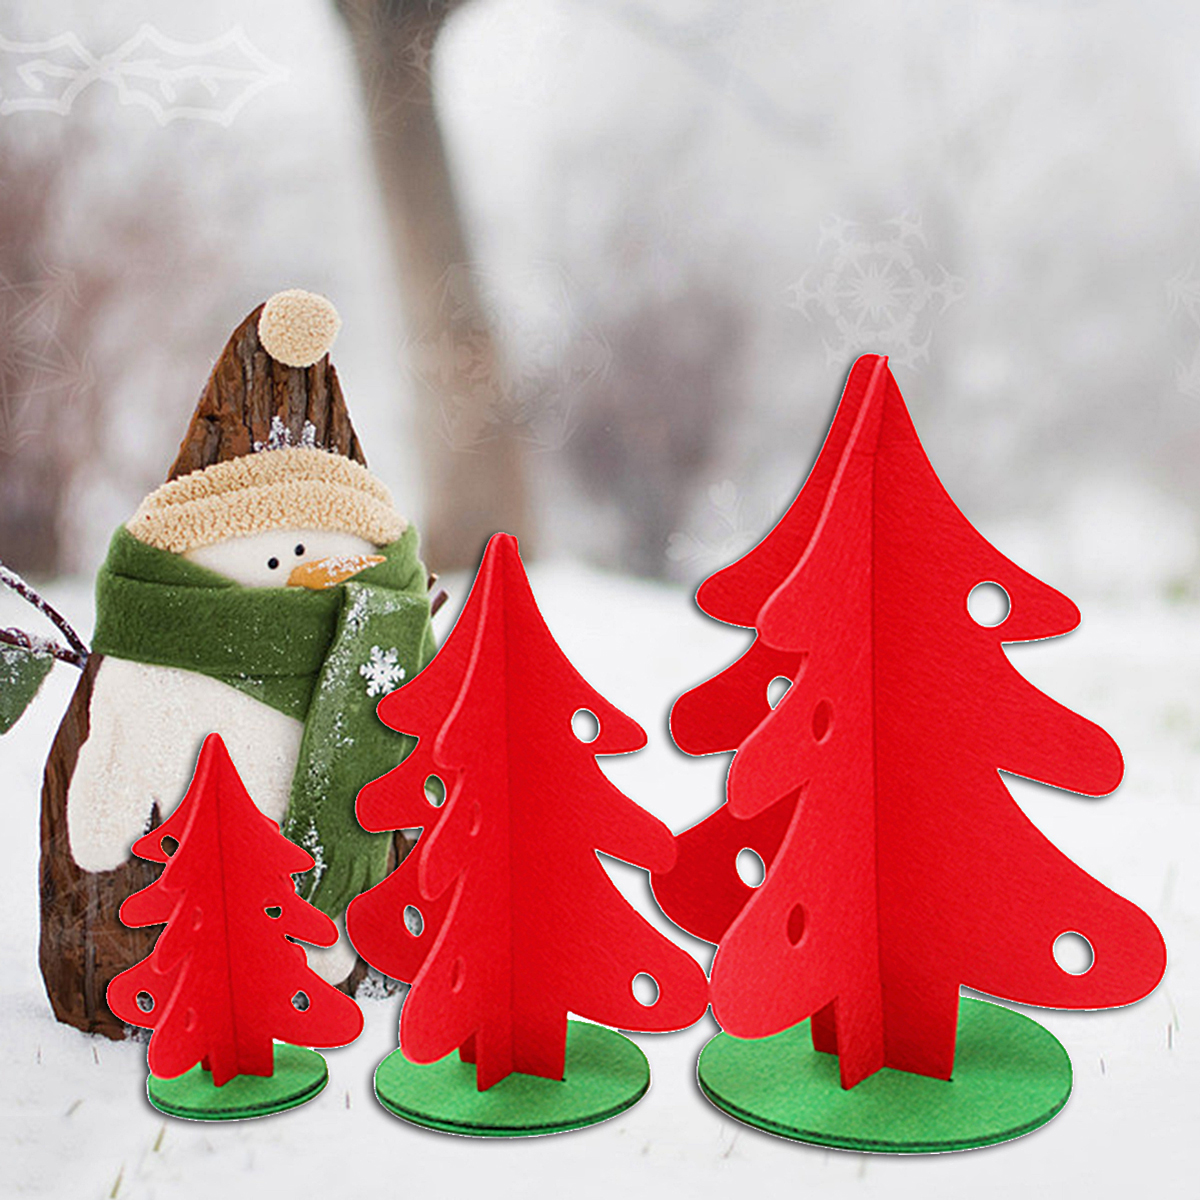 Vintage Christmas Tree Home Shop Ornament Decoration Fabric Red Green Tree